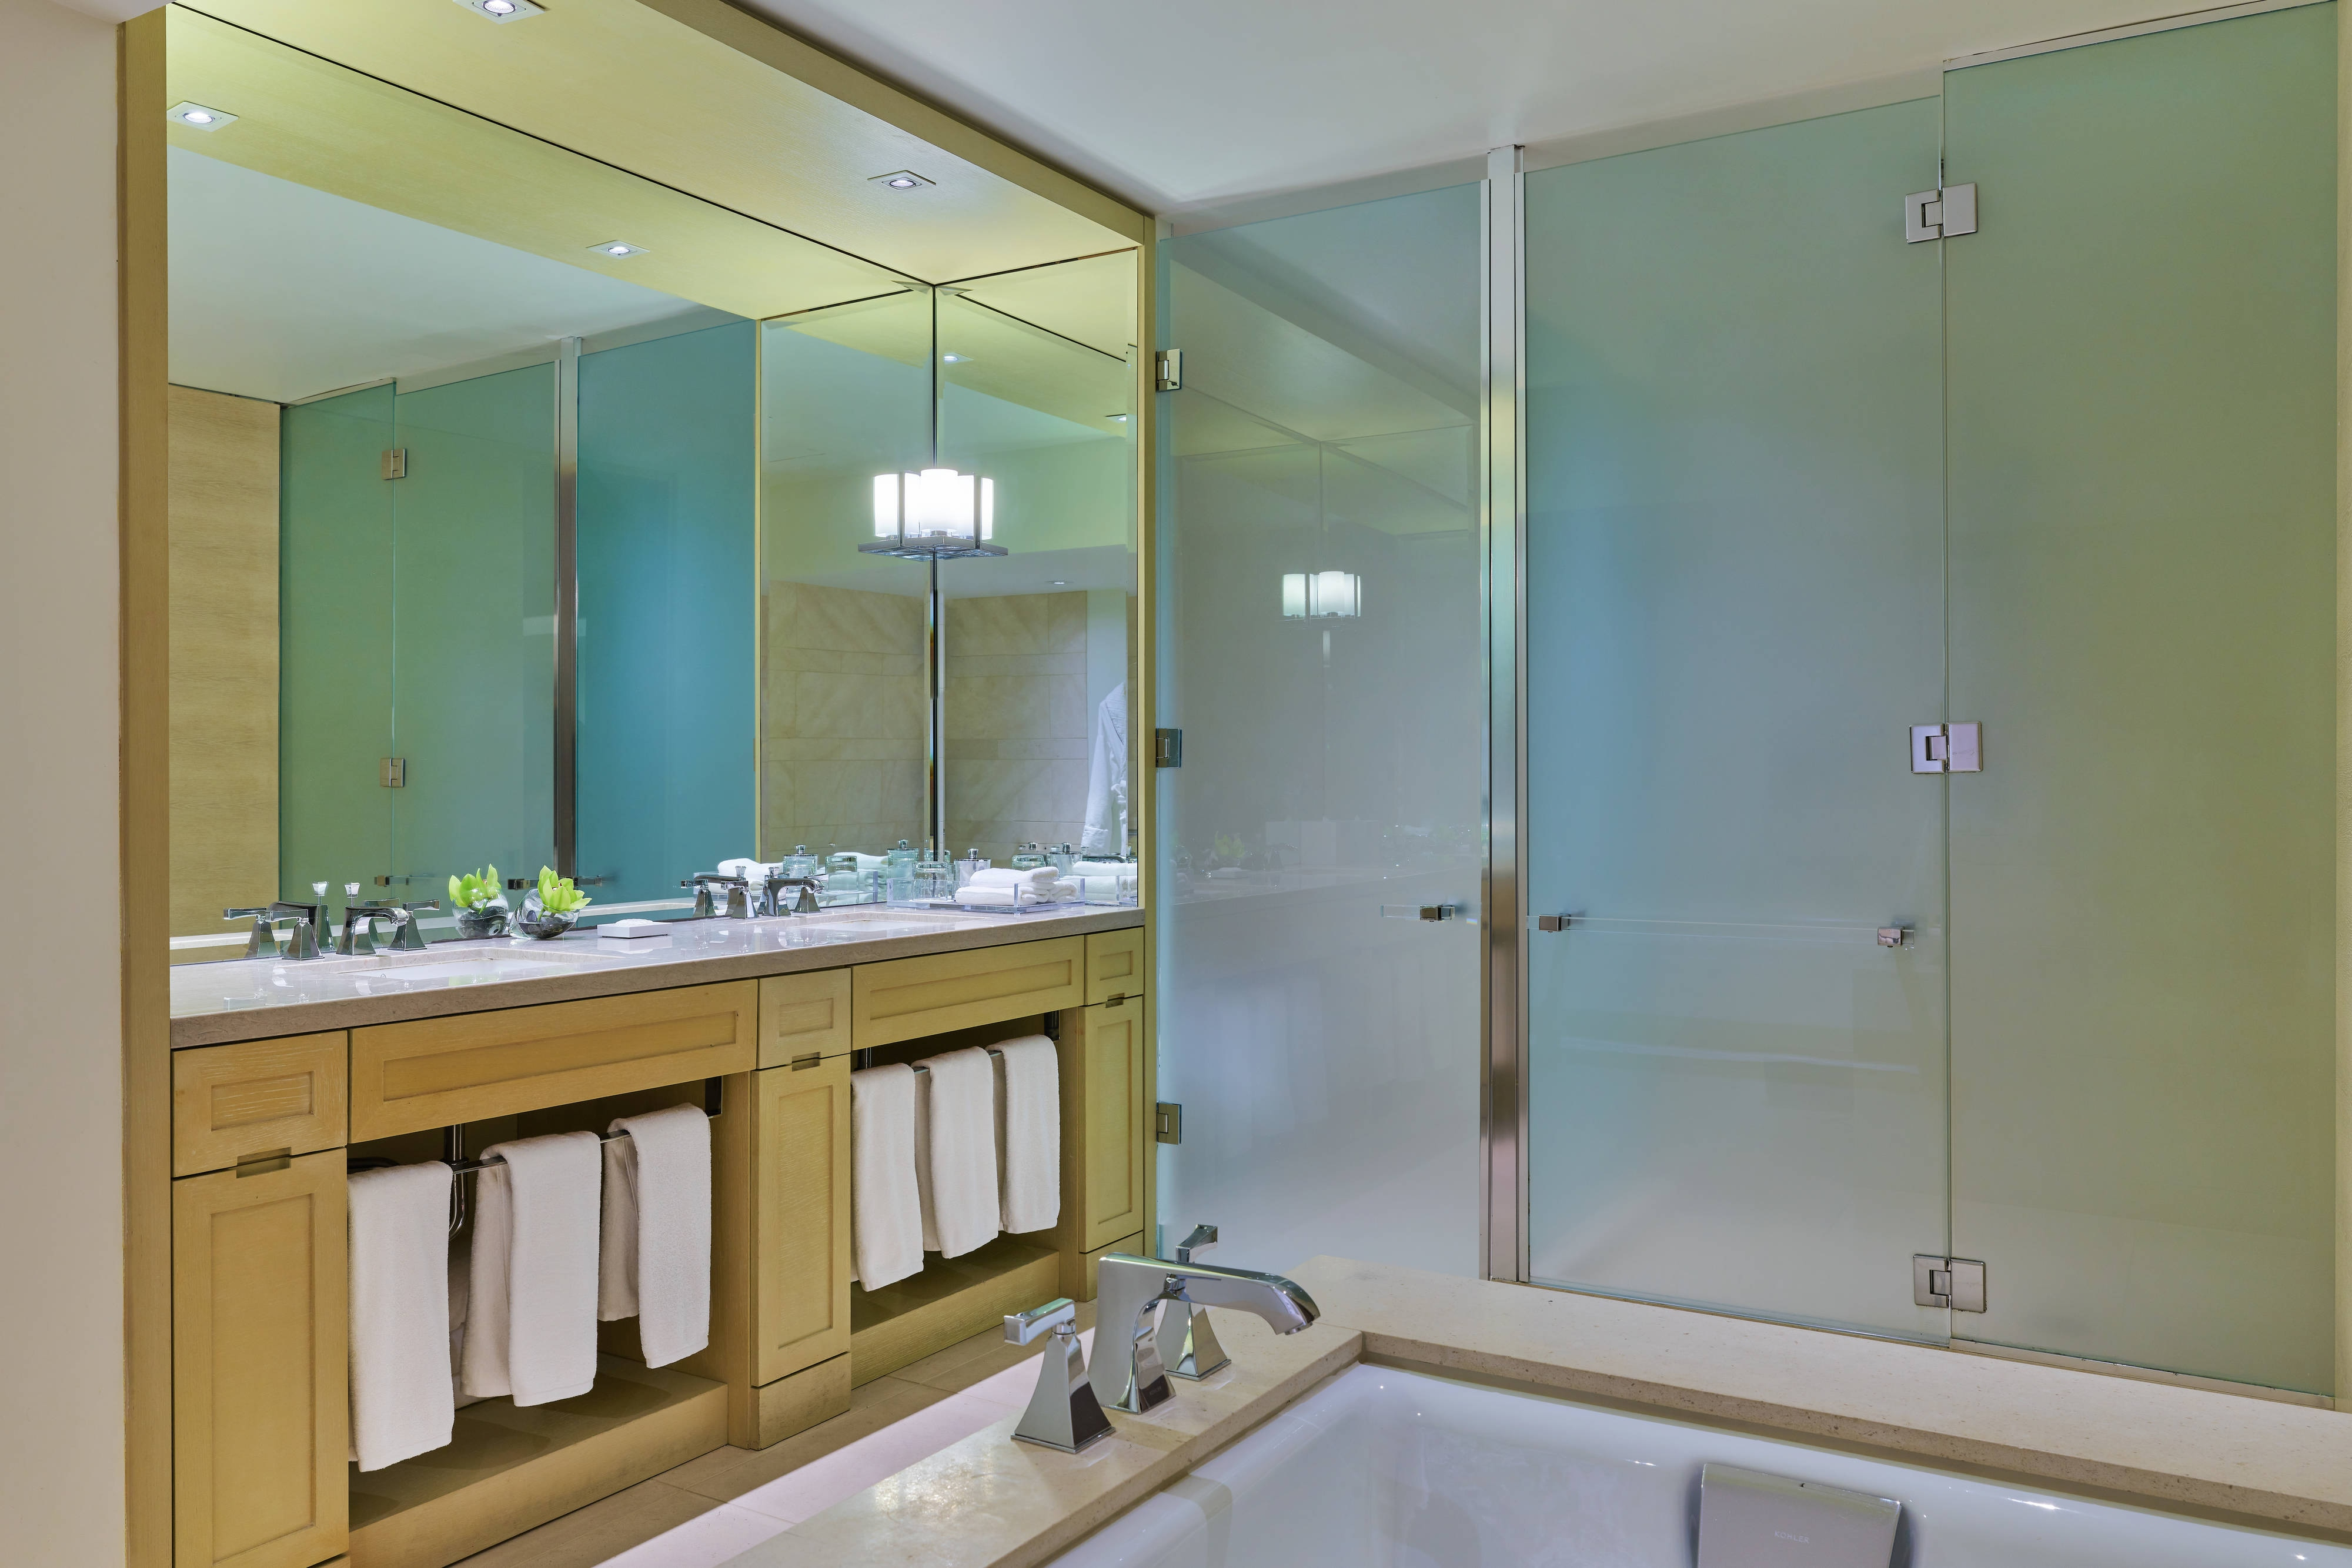 Metropolitan Suite bathroom